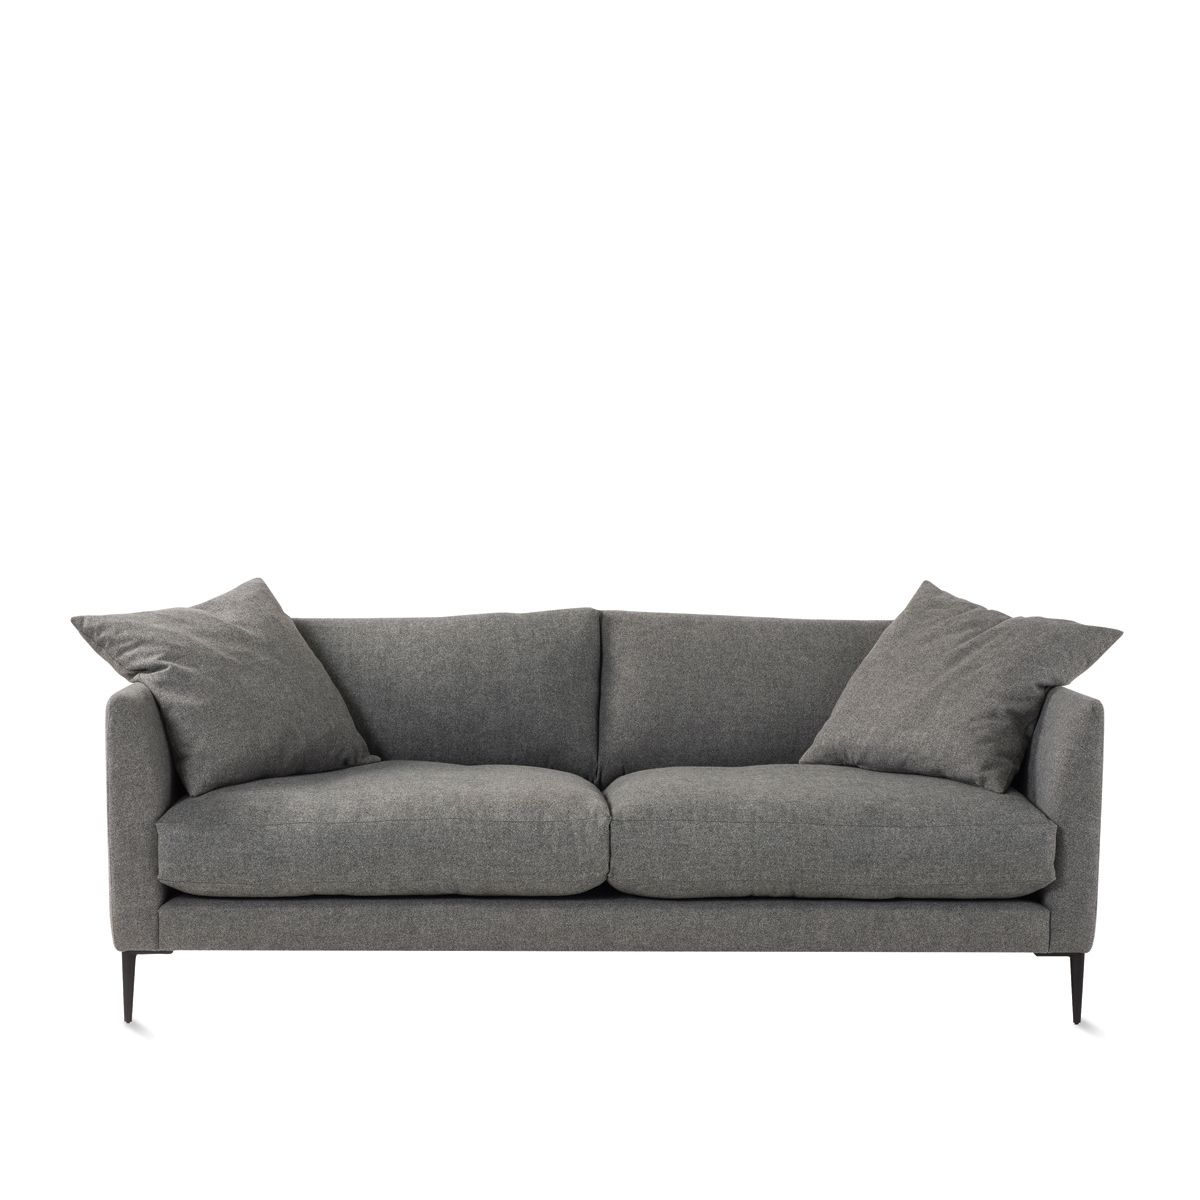 città 3 seater eve sofa in marl pumice $5690 | family room off